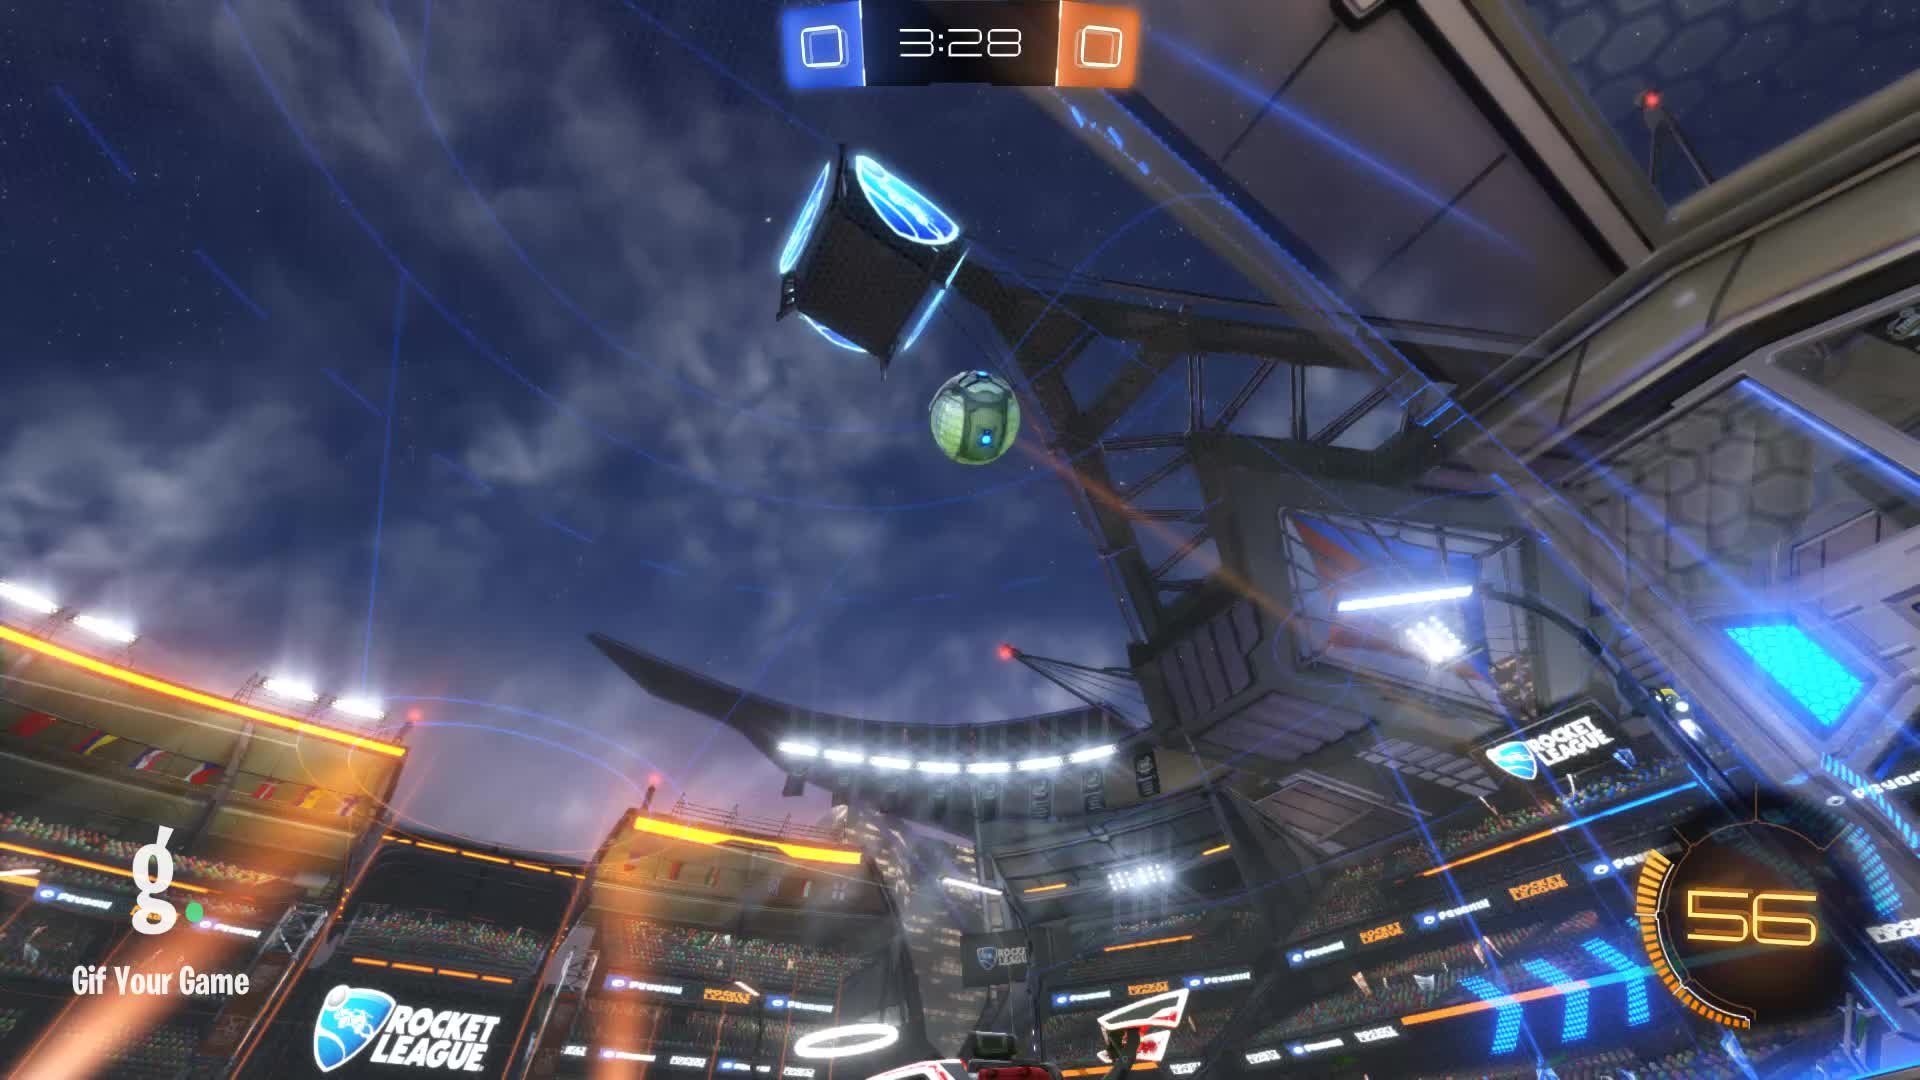 Gif Your Game, GifYourGame, Goal, Rocket League, RocketLeague, lilmoist., Goal 1: Annoy. GIFs